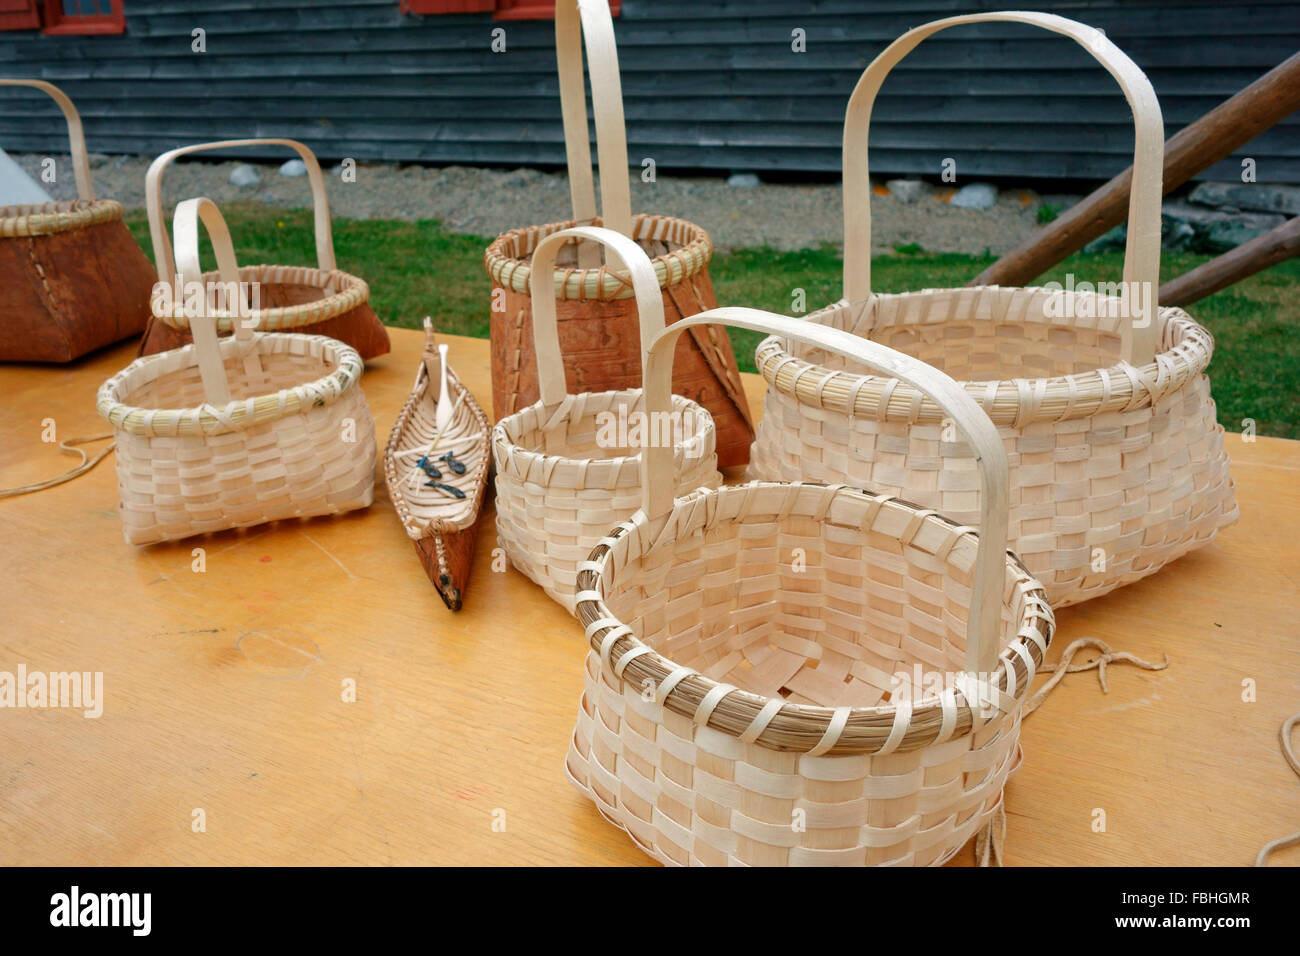 Baskets made by First Nations people in Canada - Stock Image